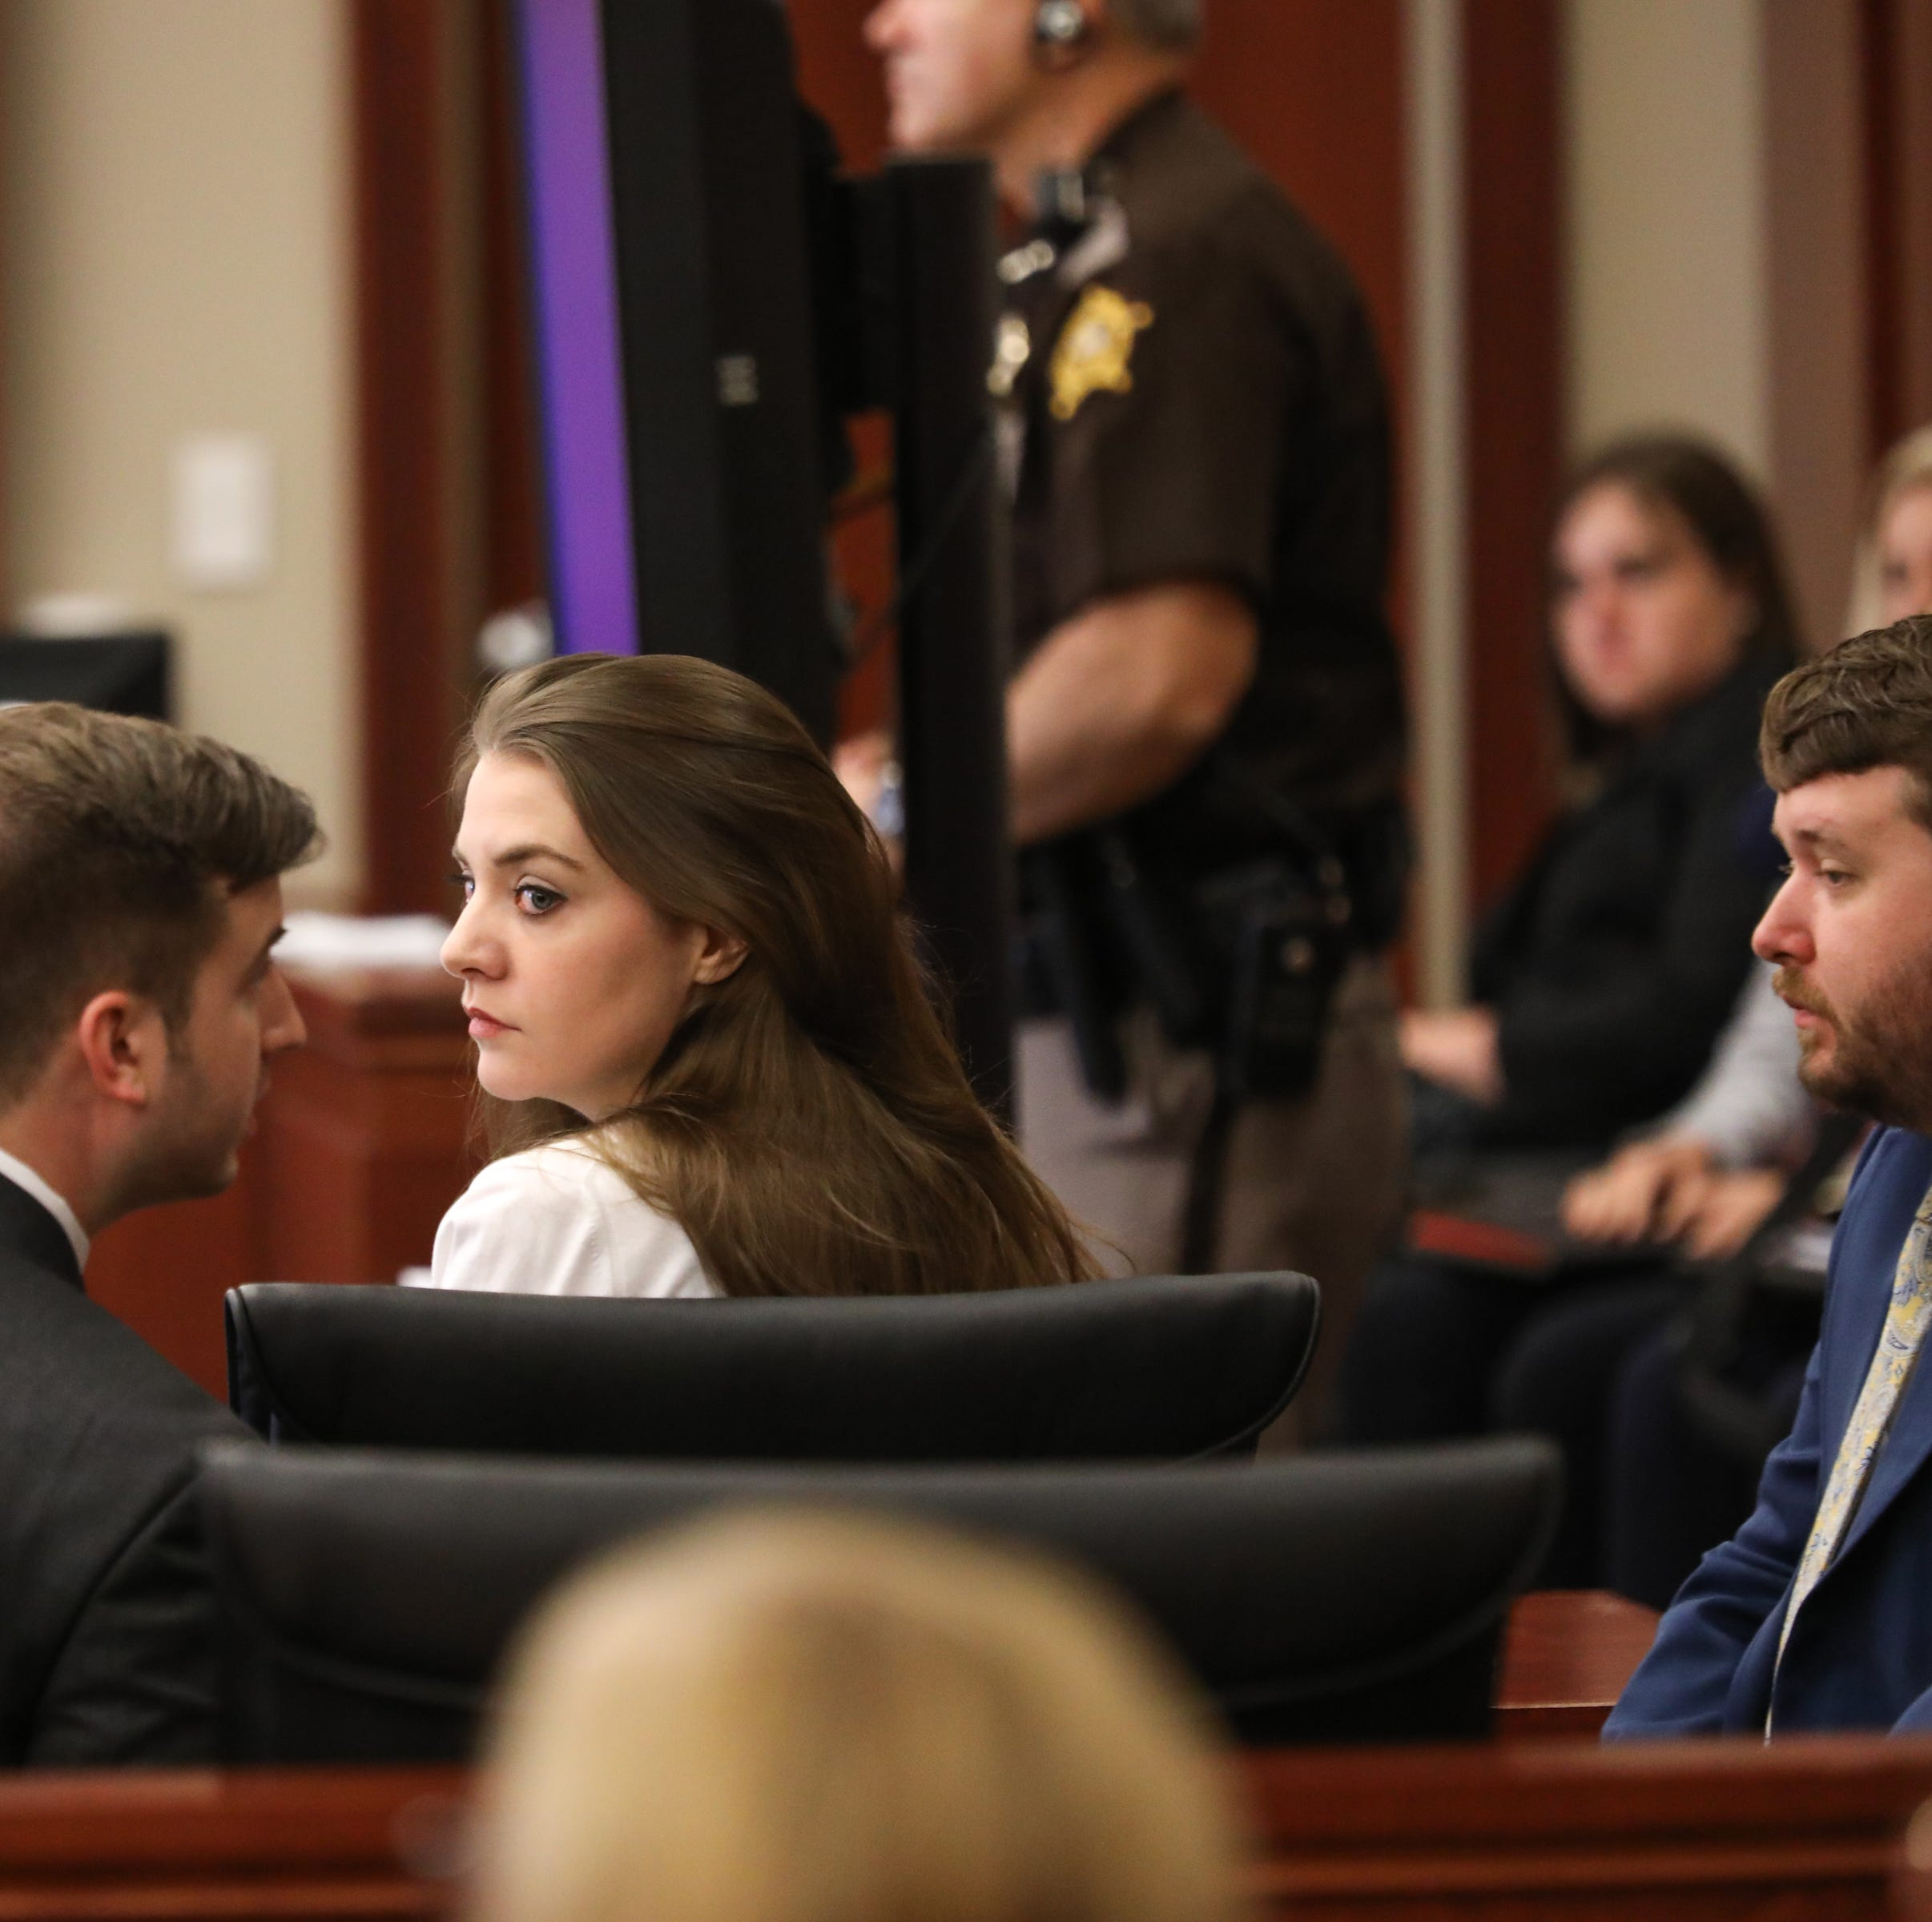 Shayna Hubers retrial: Jurors shown 'gave him the nose job he wanted' police station video